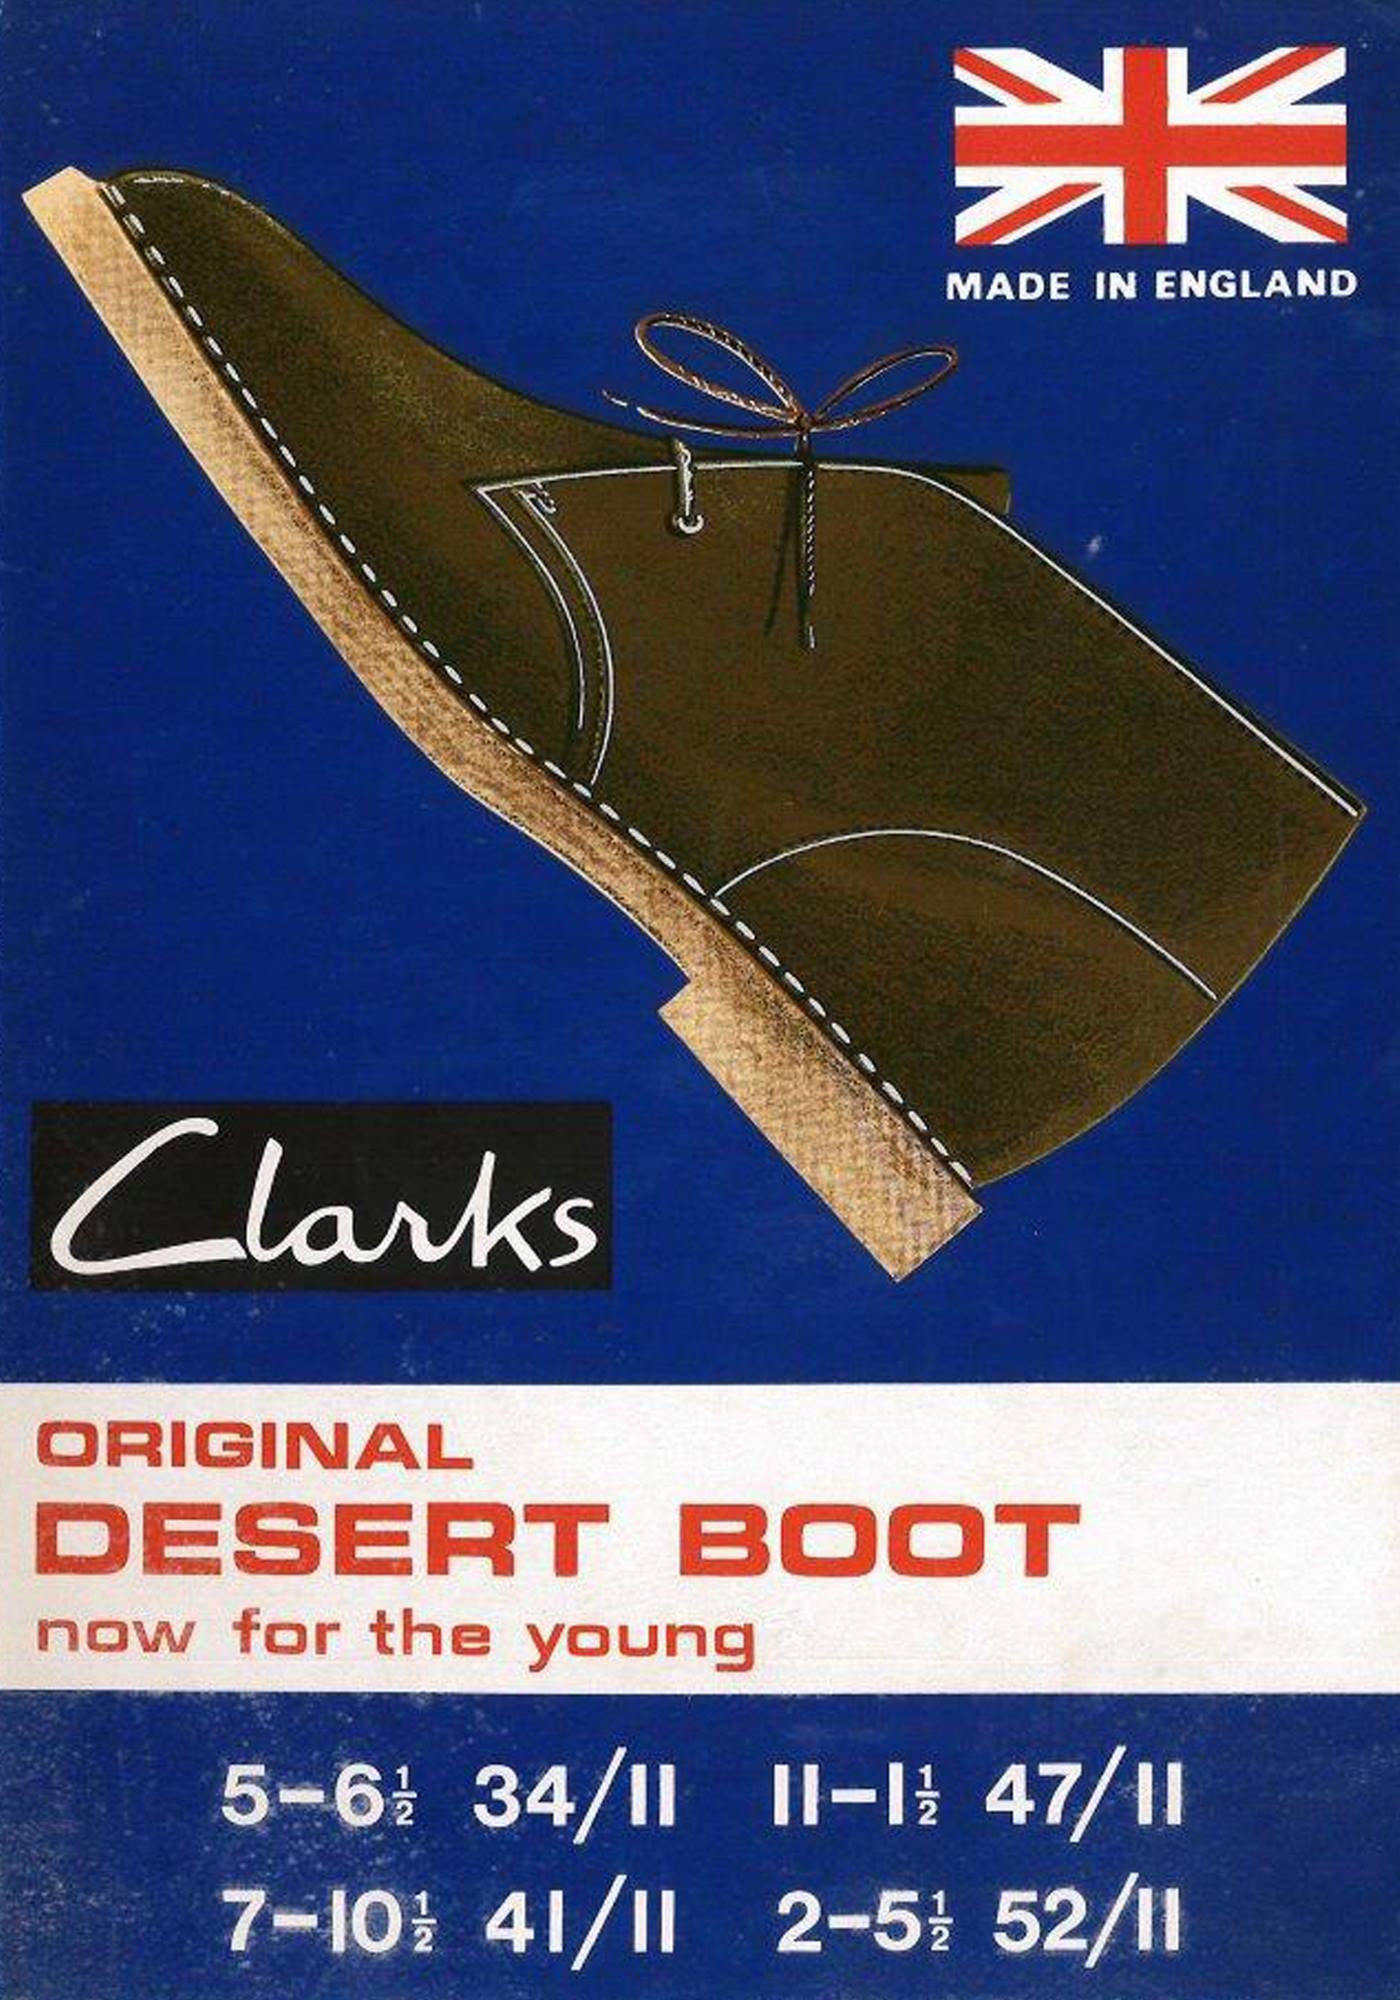 Old Clarks Ad